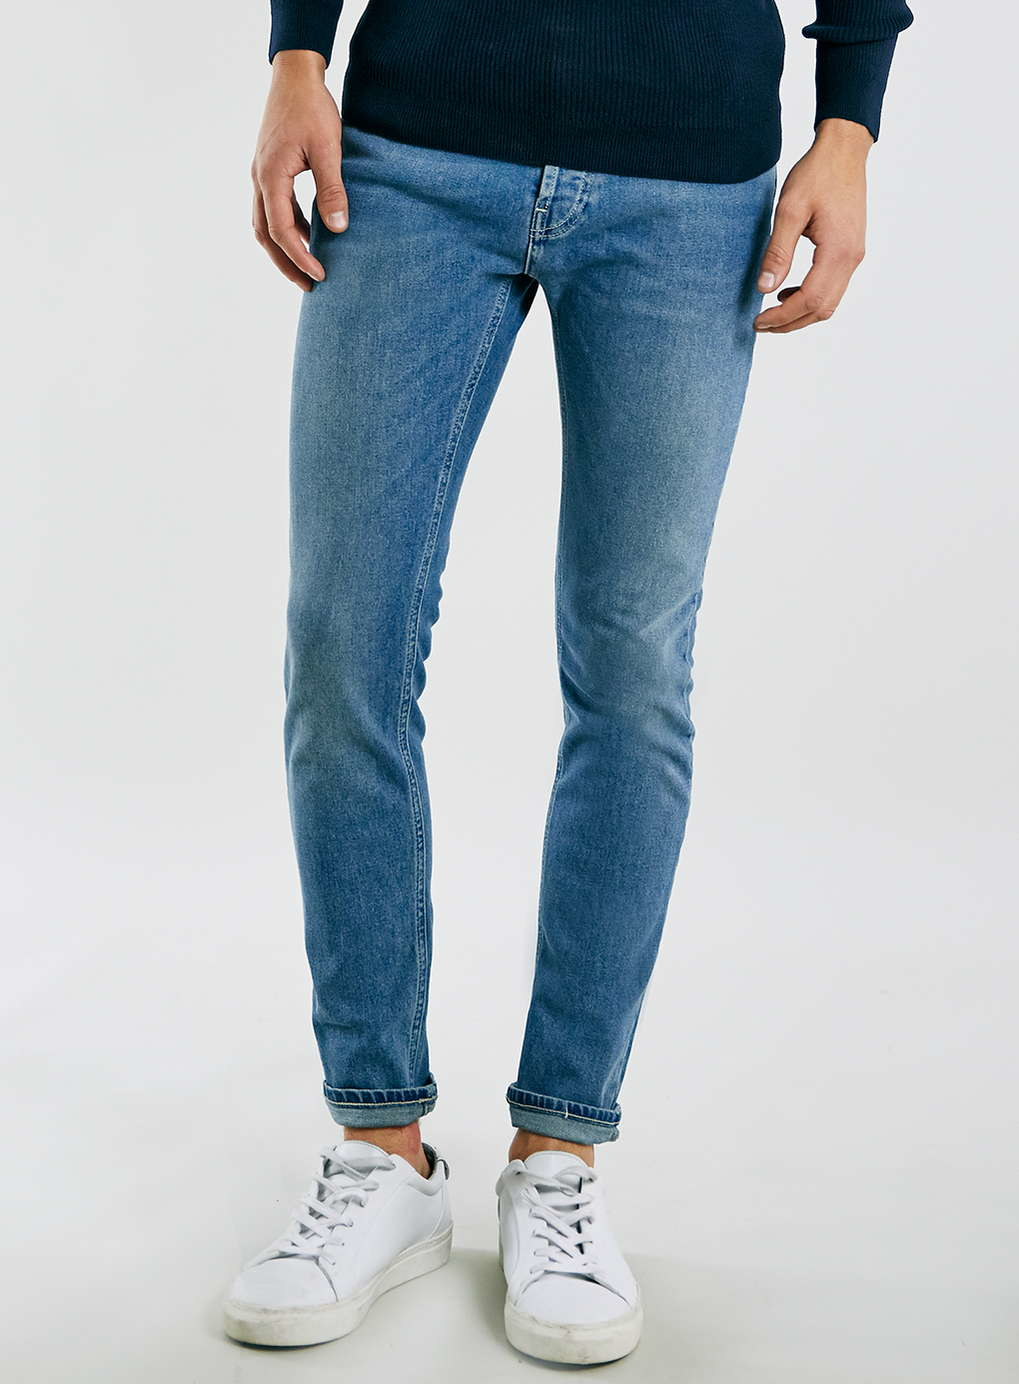 The jean: H&M Skinny Regular Jeans, $* (our pairs were $), and H&M+ Shaping Skinny Jeans, $ *H&M changes their stock so often that the jeans currently available are slightly different than (although still pretty similar to) the exact jeans we tried.